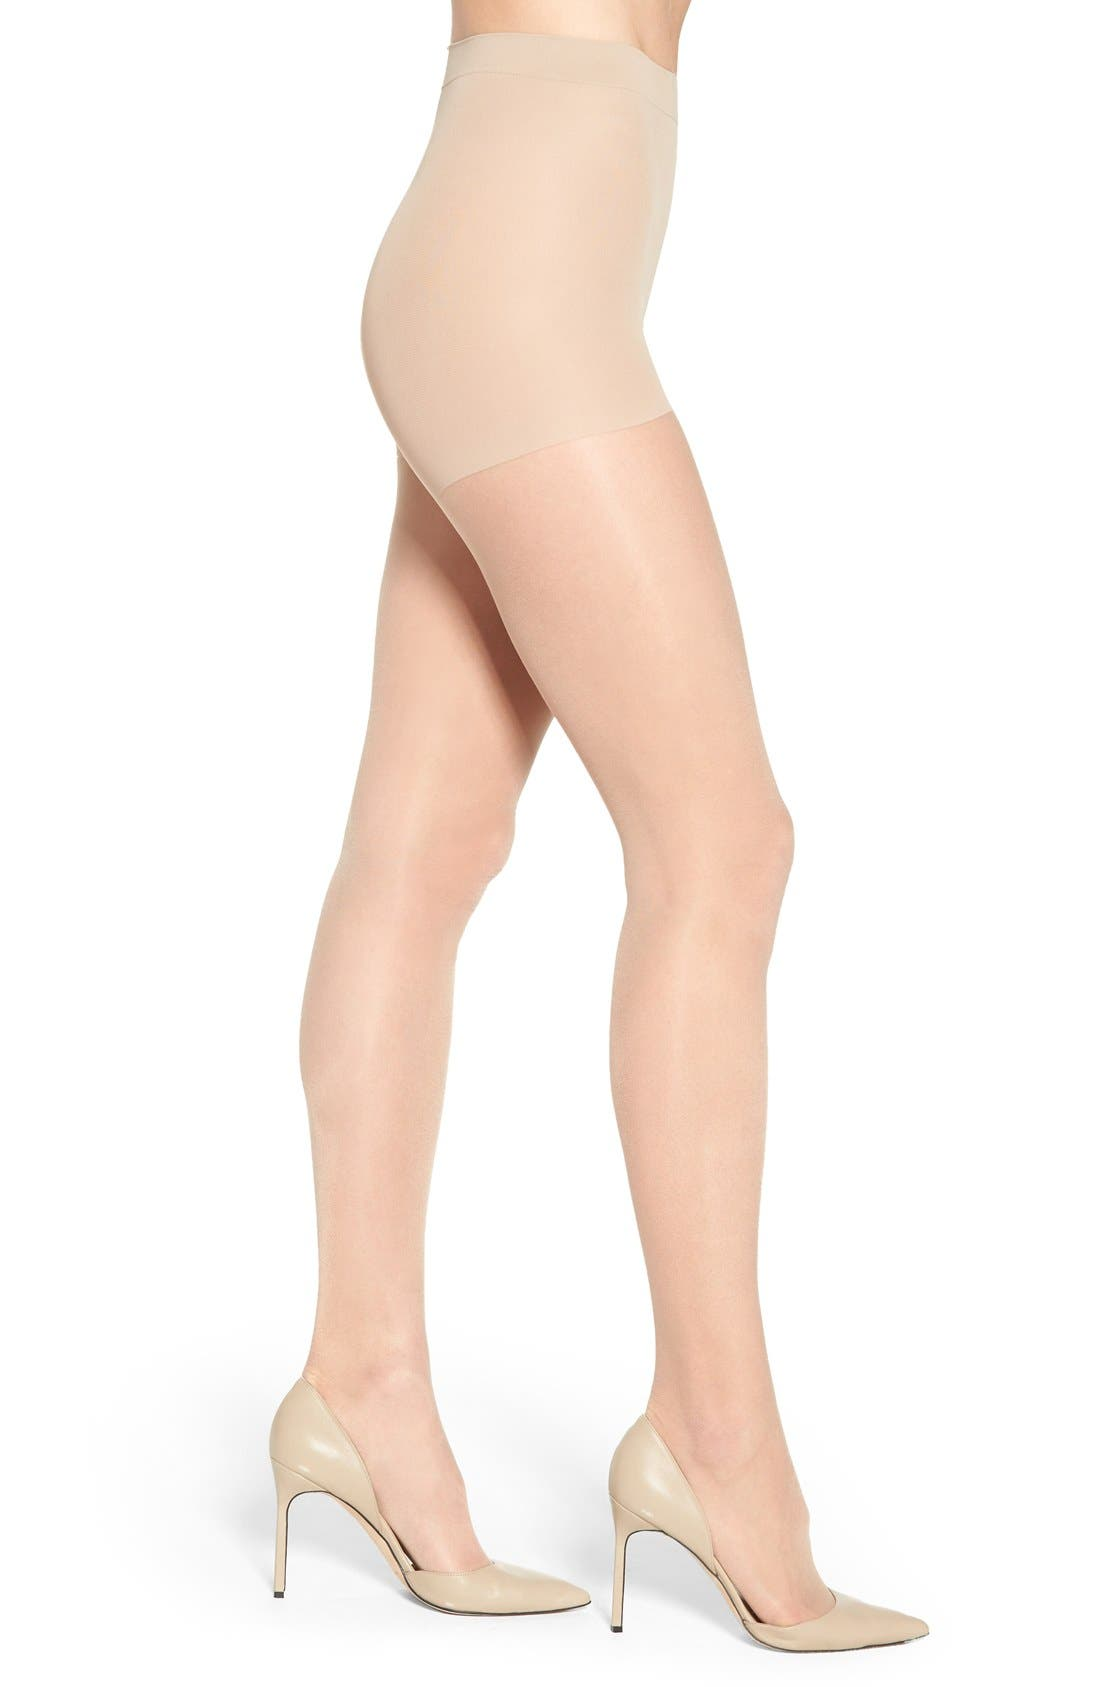 Nordstrom Light Support Pantyhose